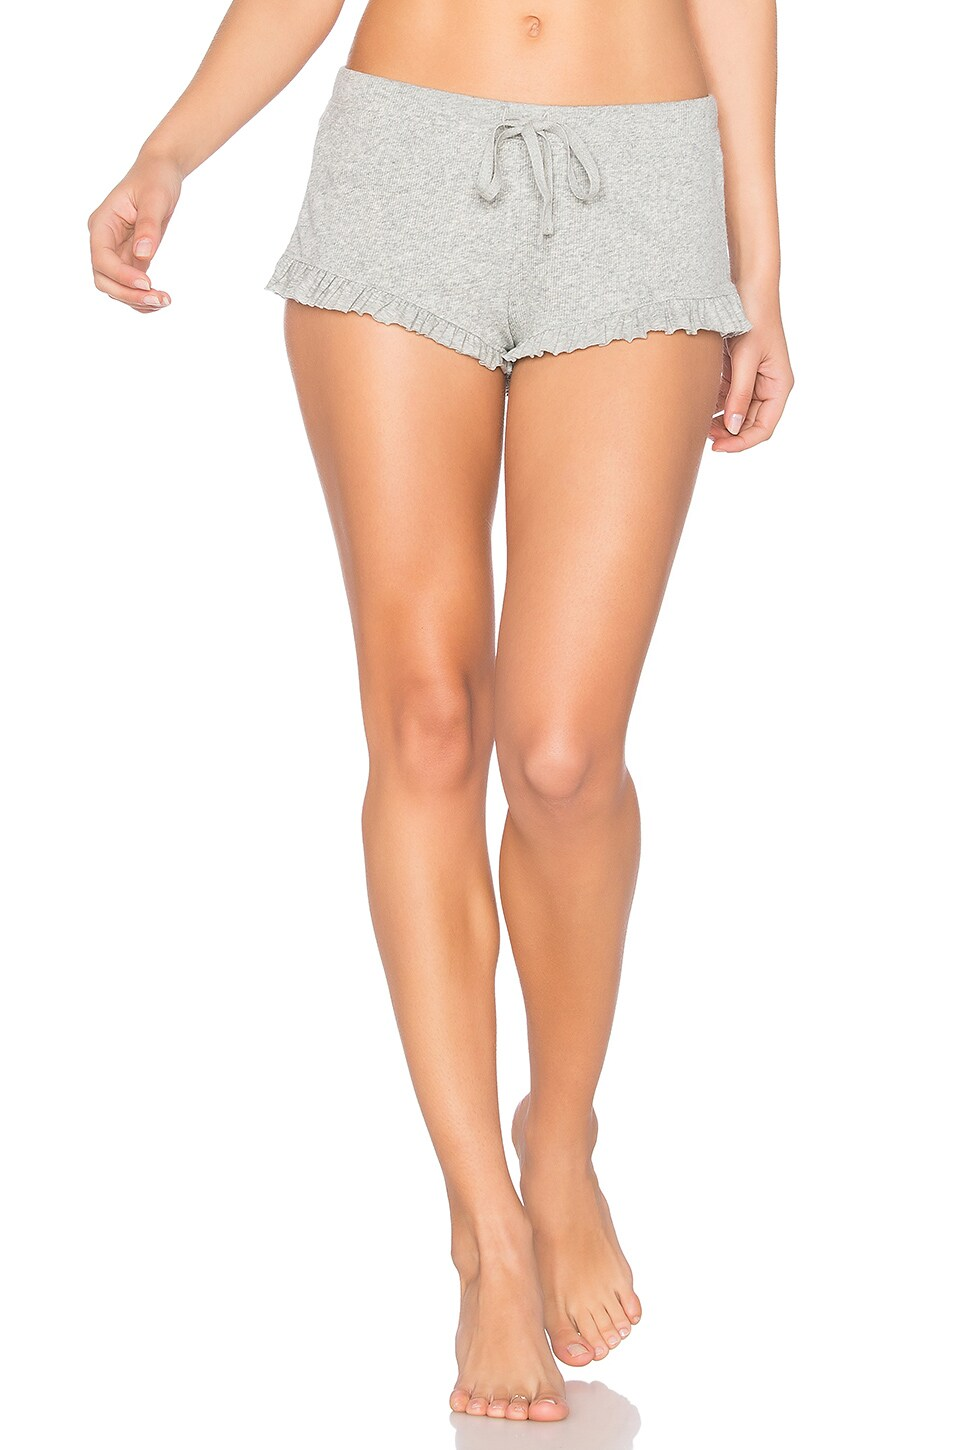 Skin Shorts in Heather Gray